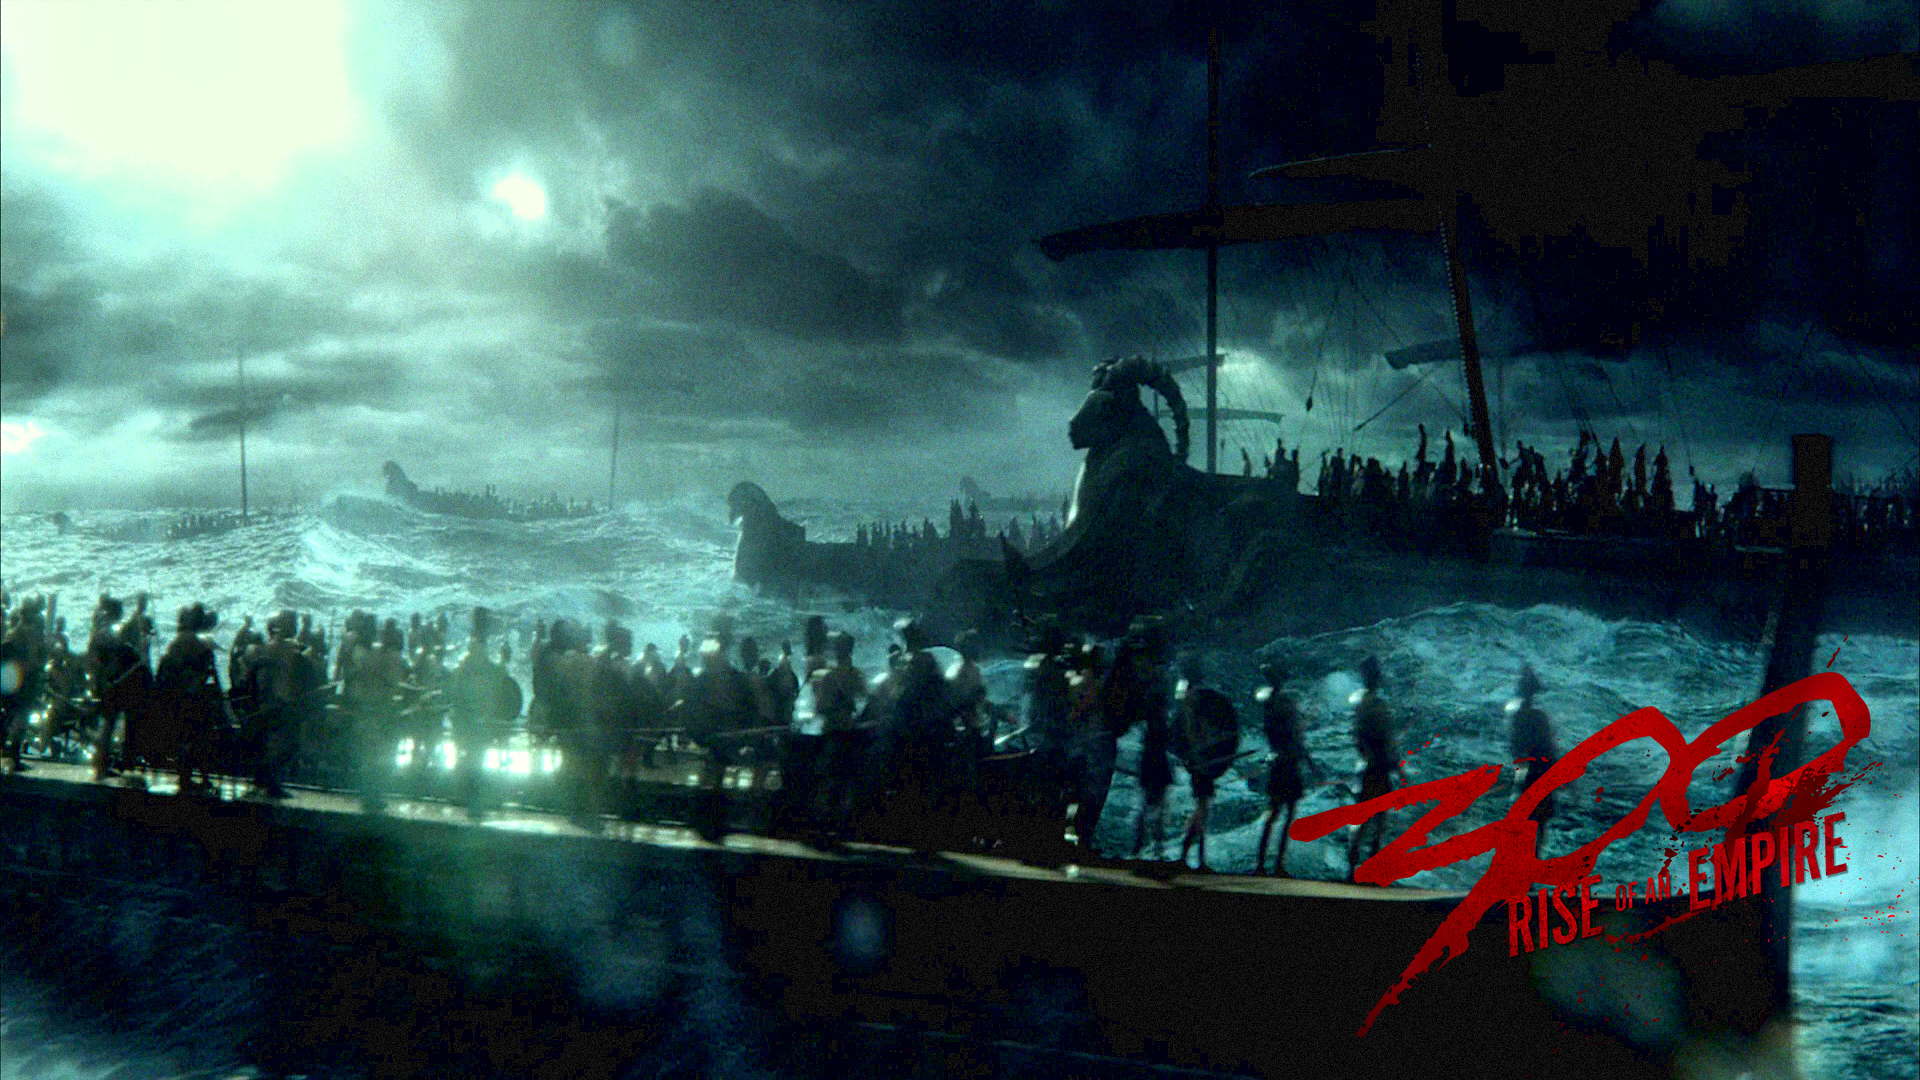 1920x1080 - 300: Rise of an Empire Wallpapers 20